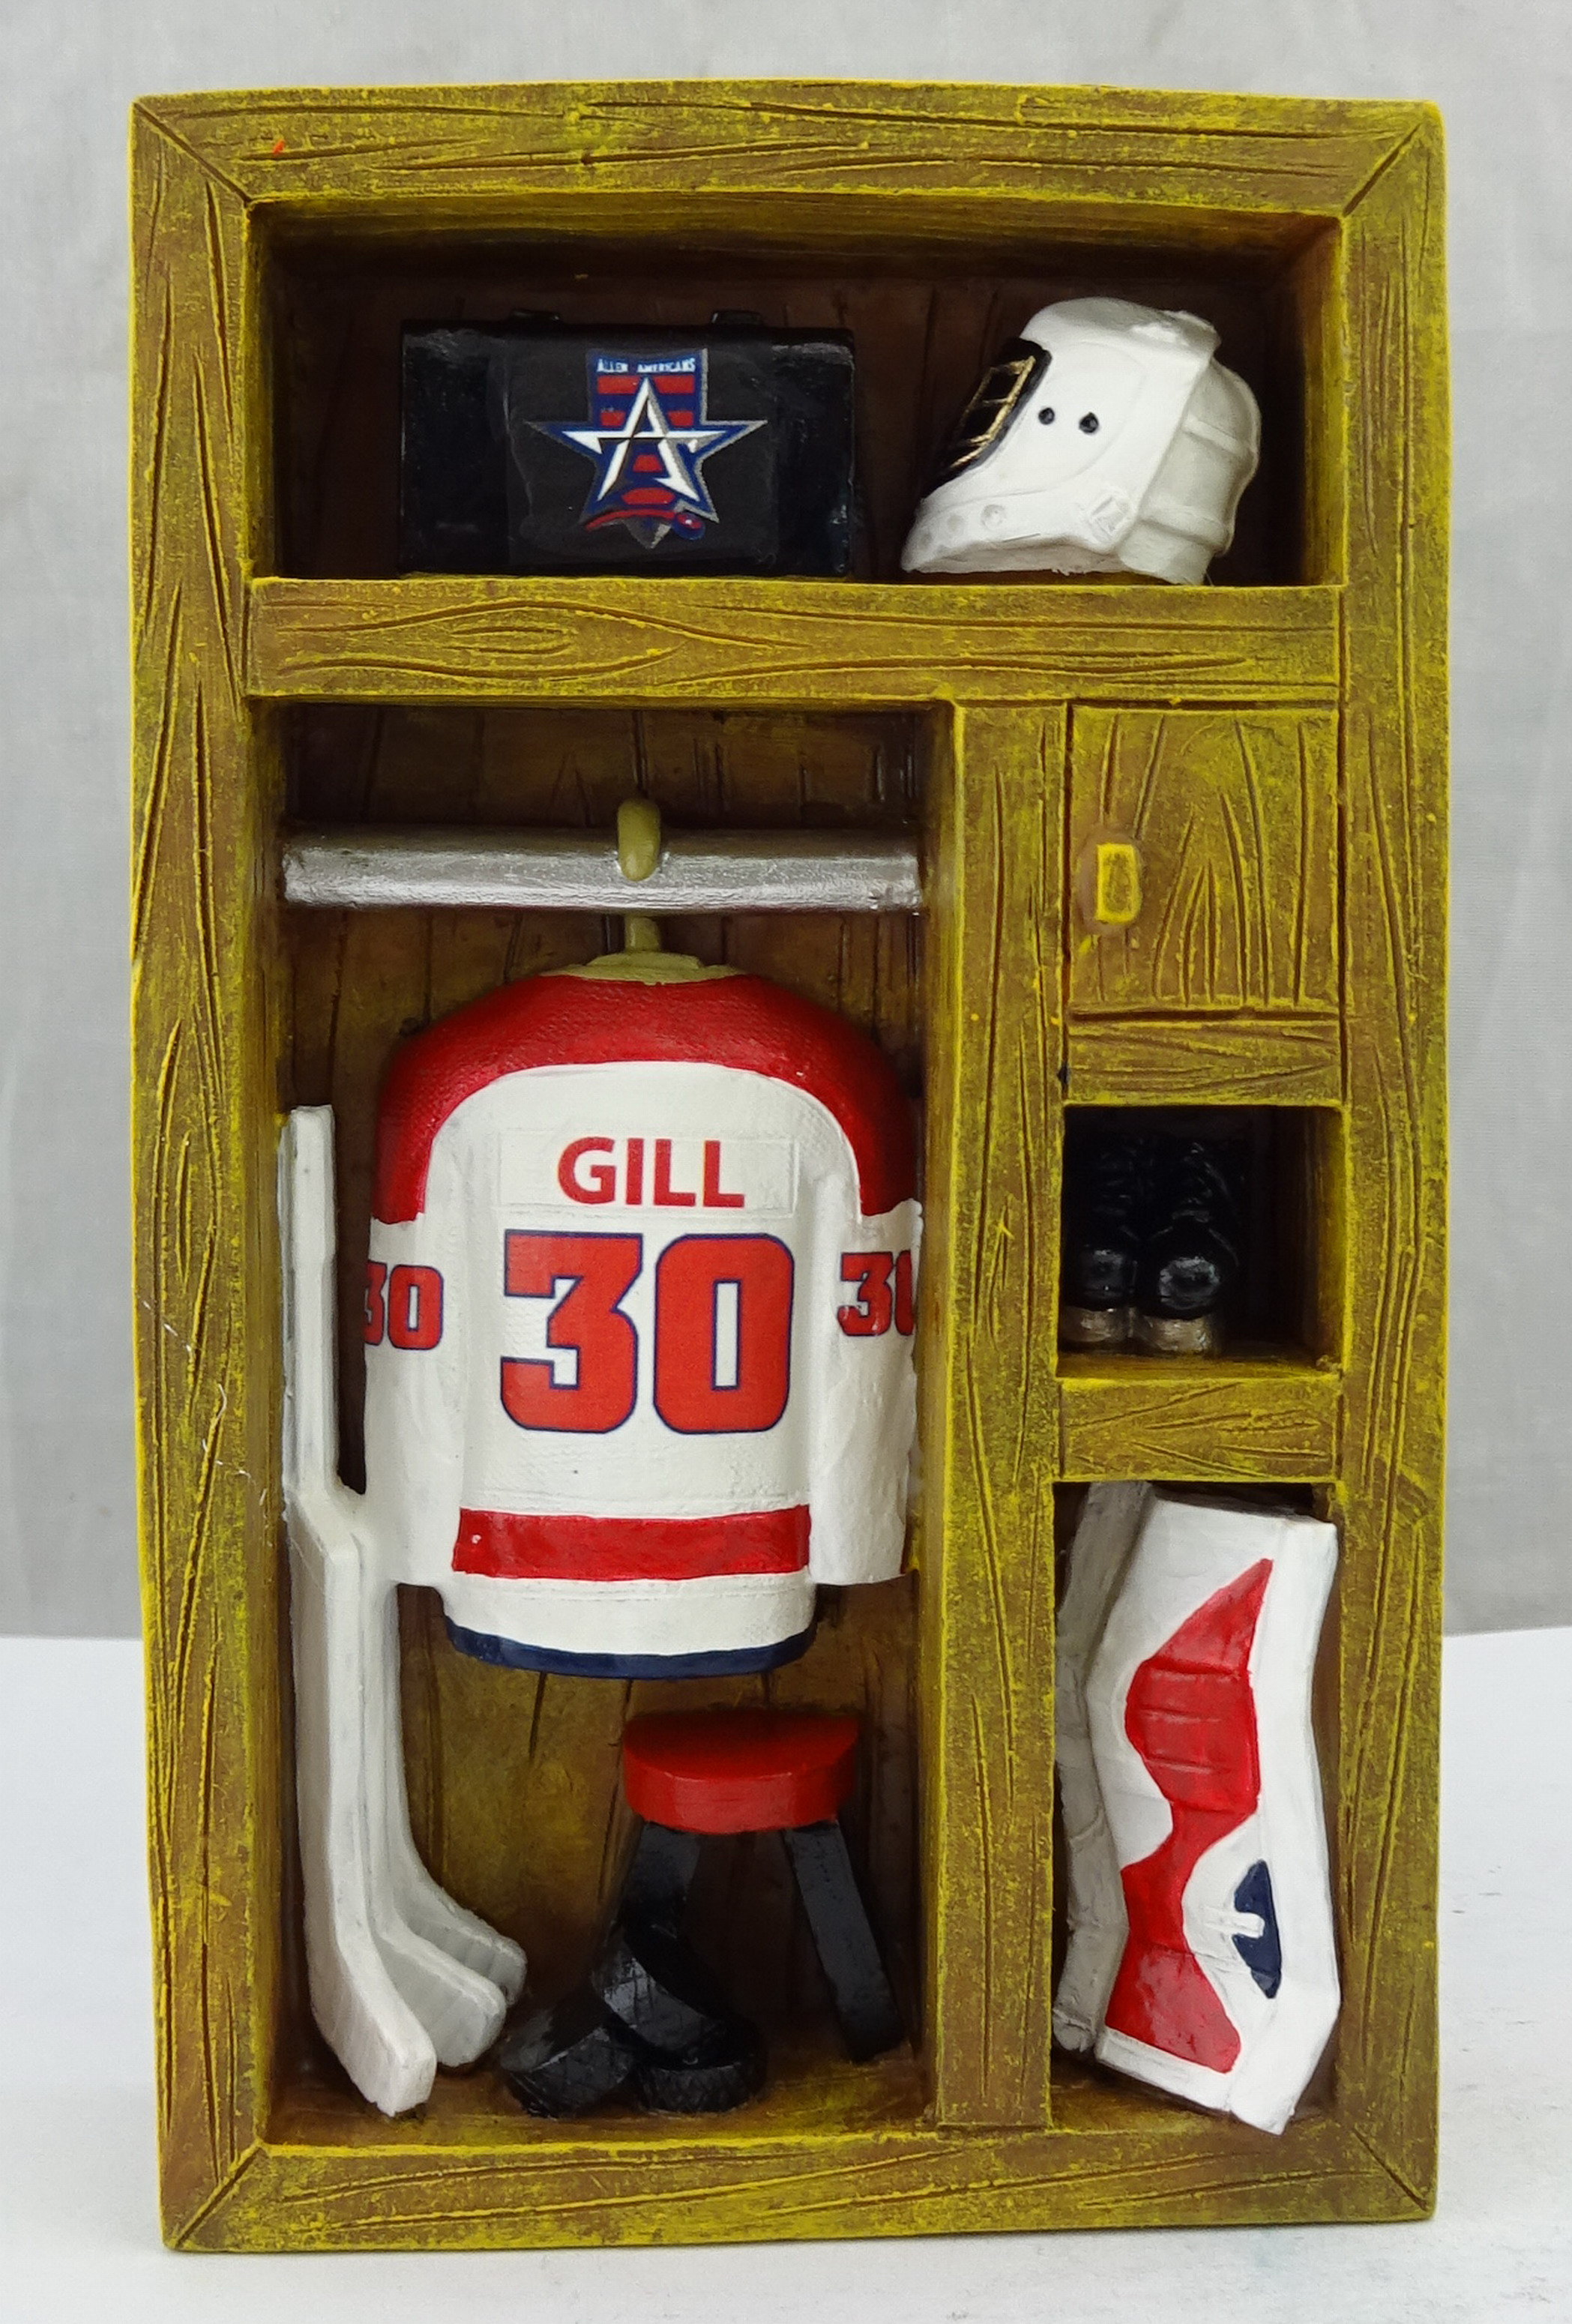 Allen Americans - Gill 113307, Player Locker (1).jpg